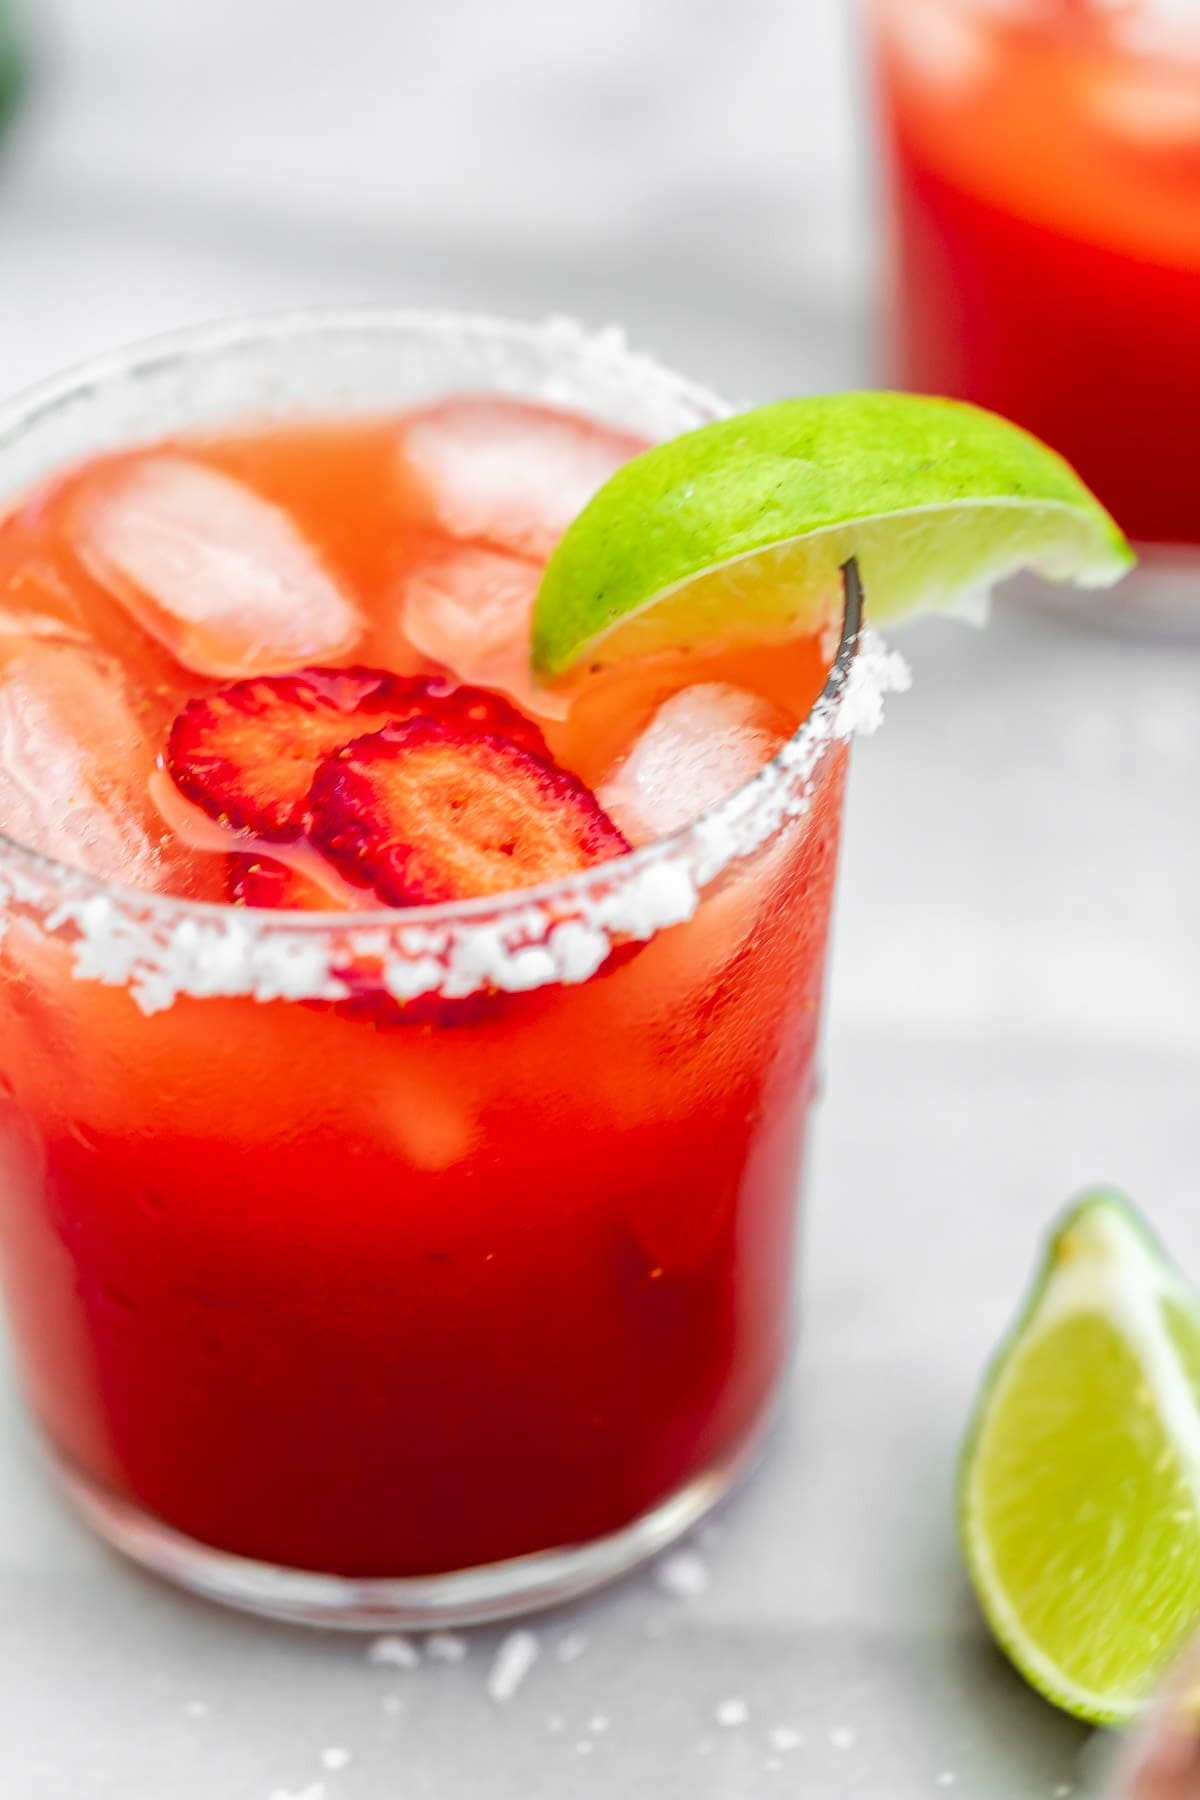 Up close image of the strawberry margarita with salt on the rim.